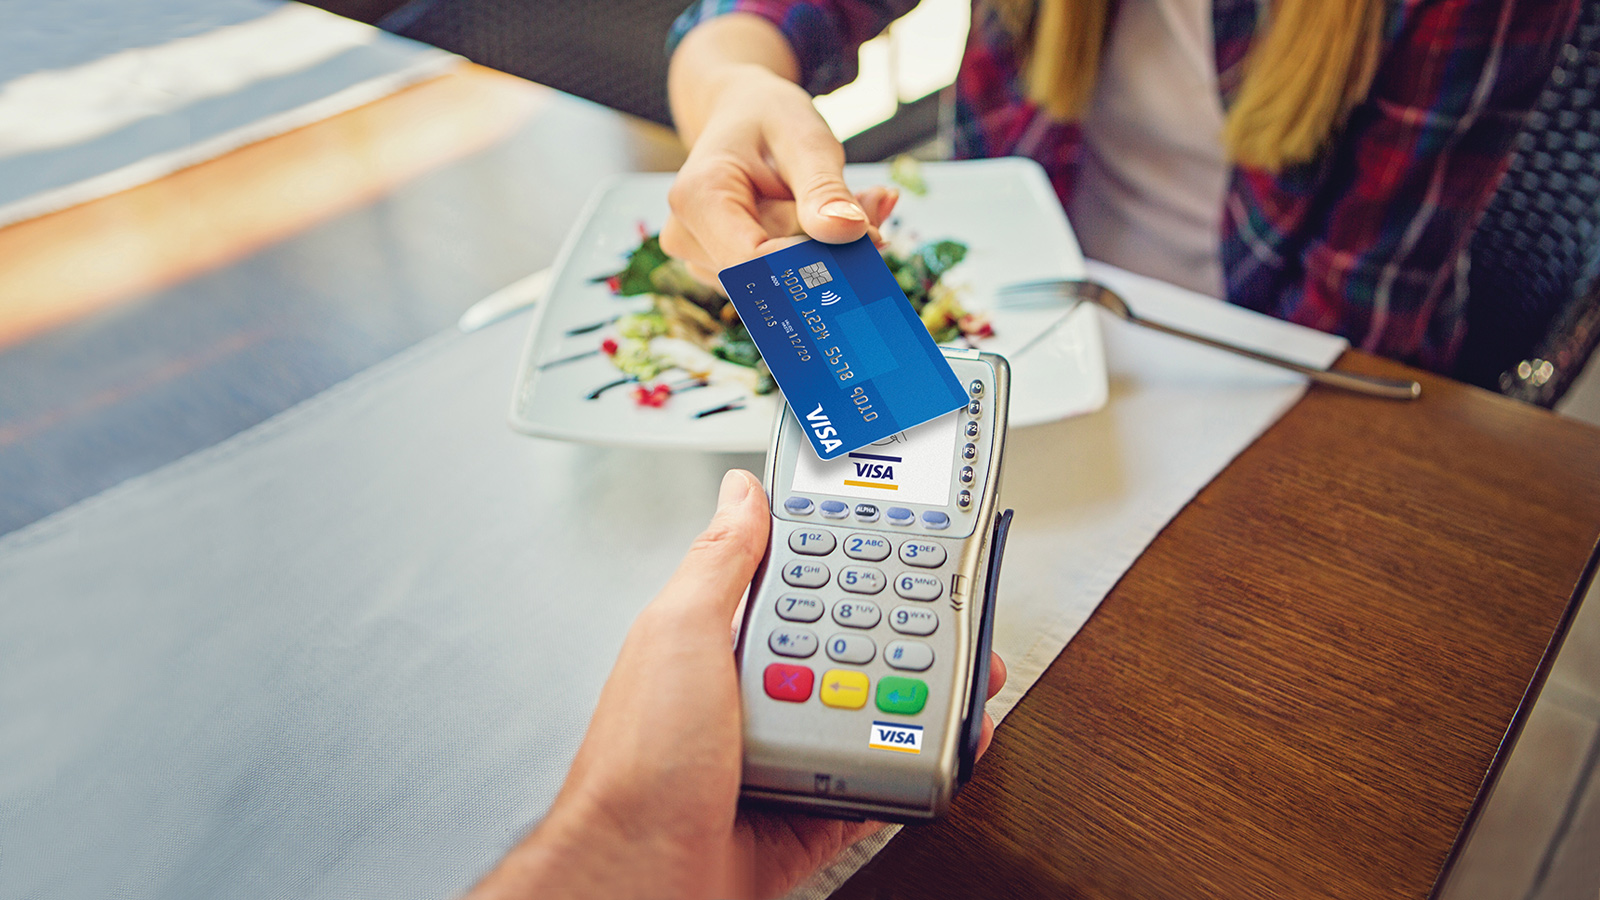 Contactless Payments with Visa